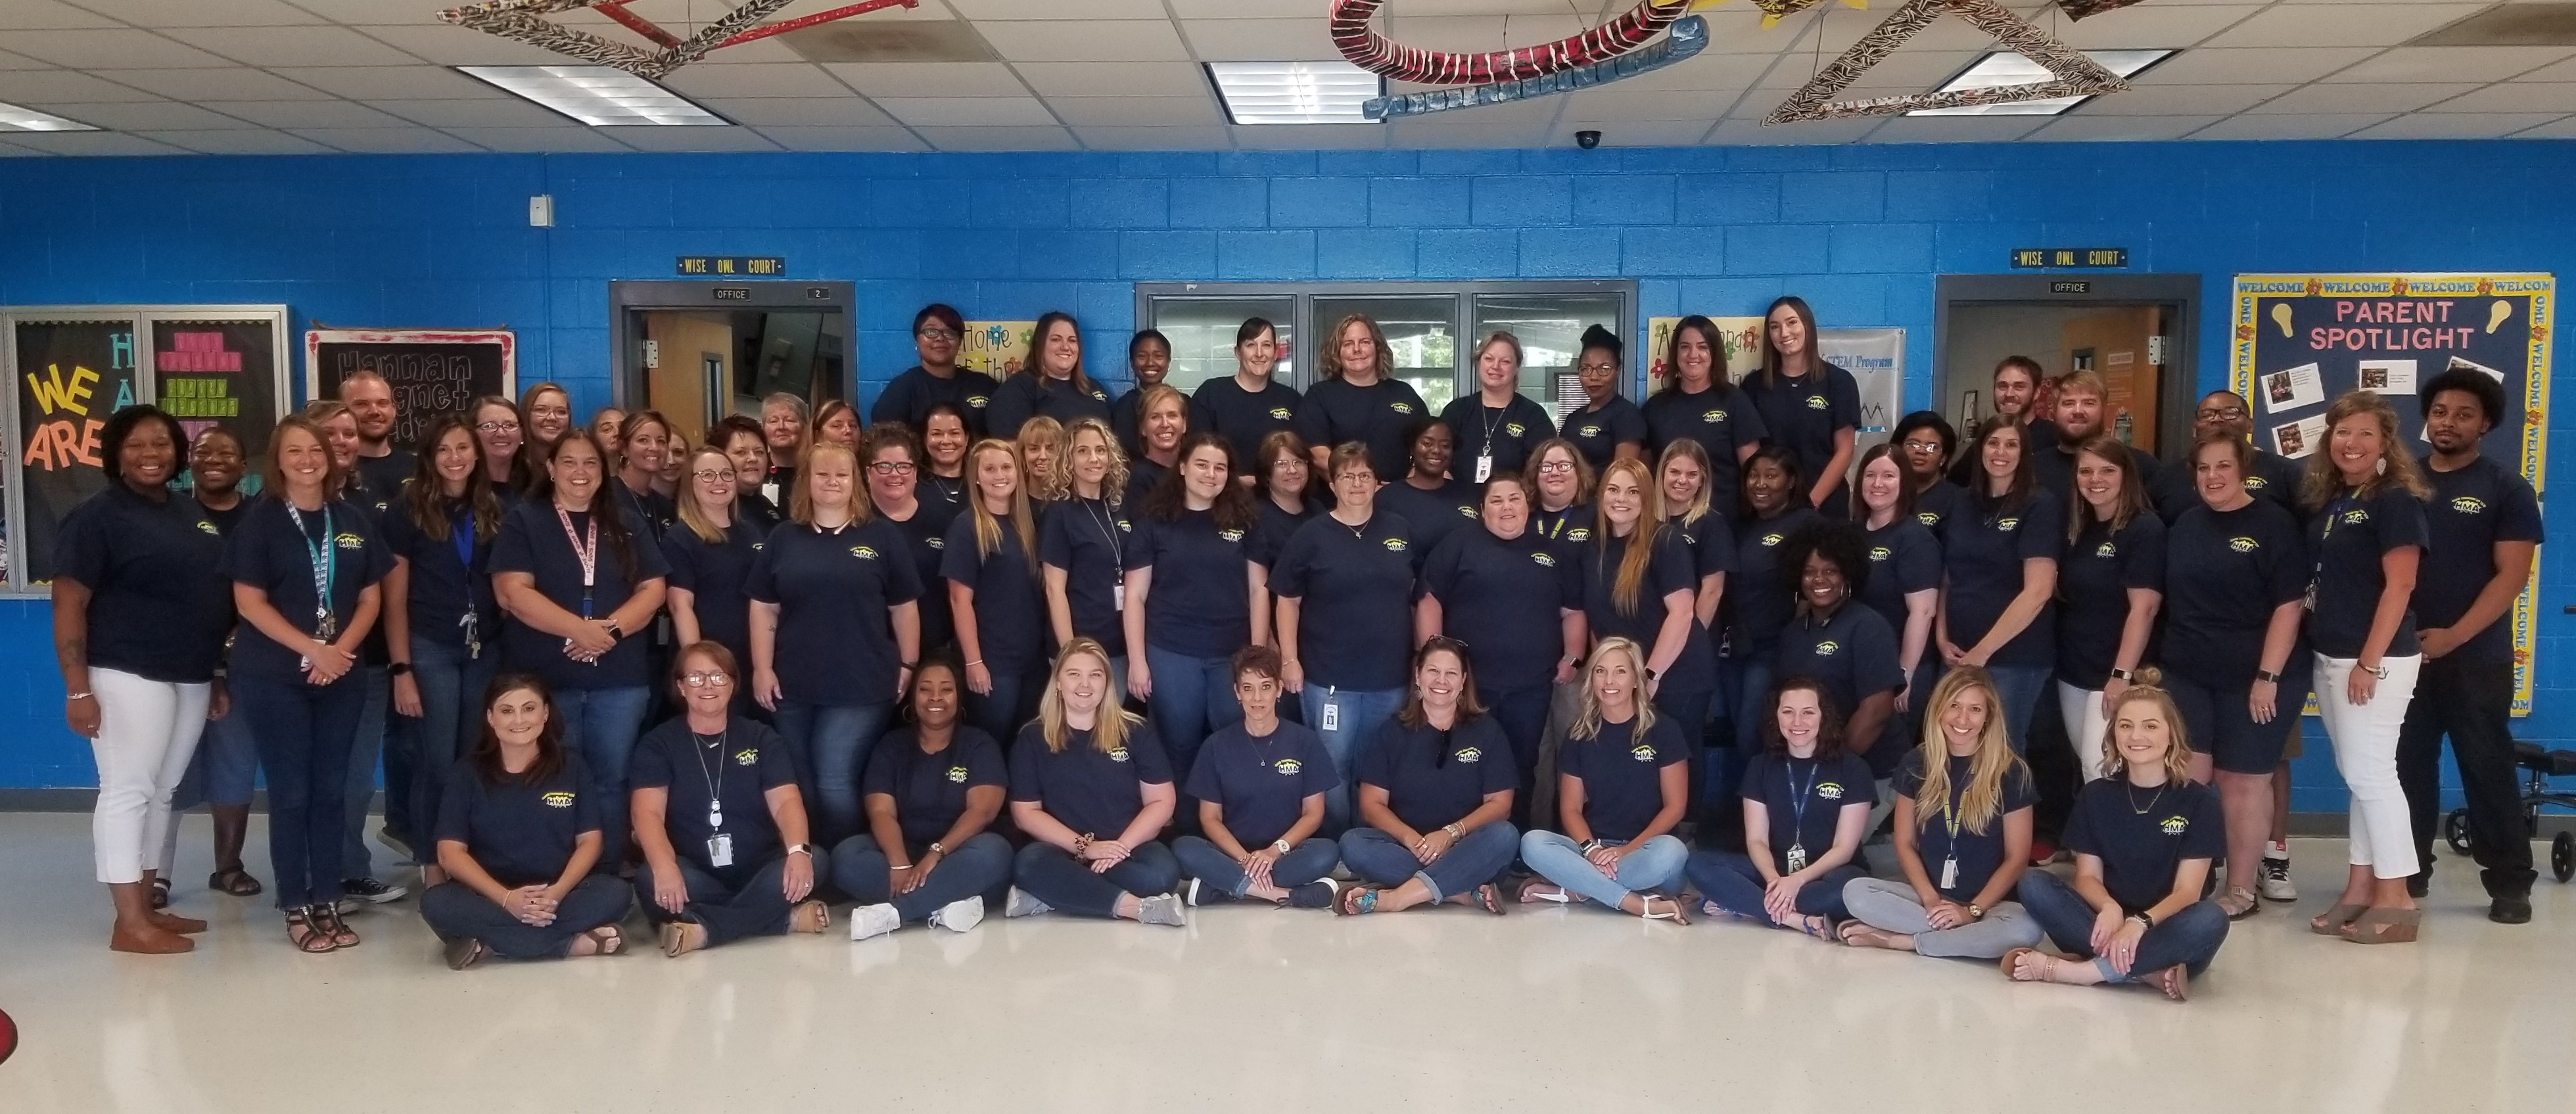 faculty pic 2019-2020 crop